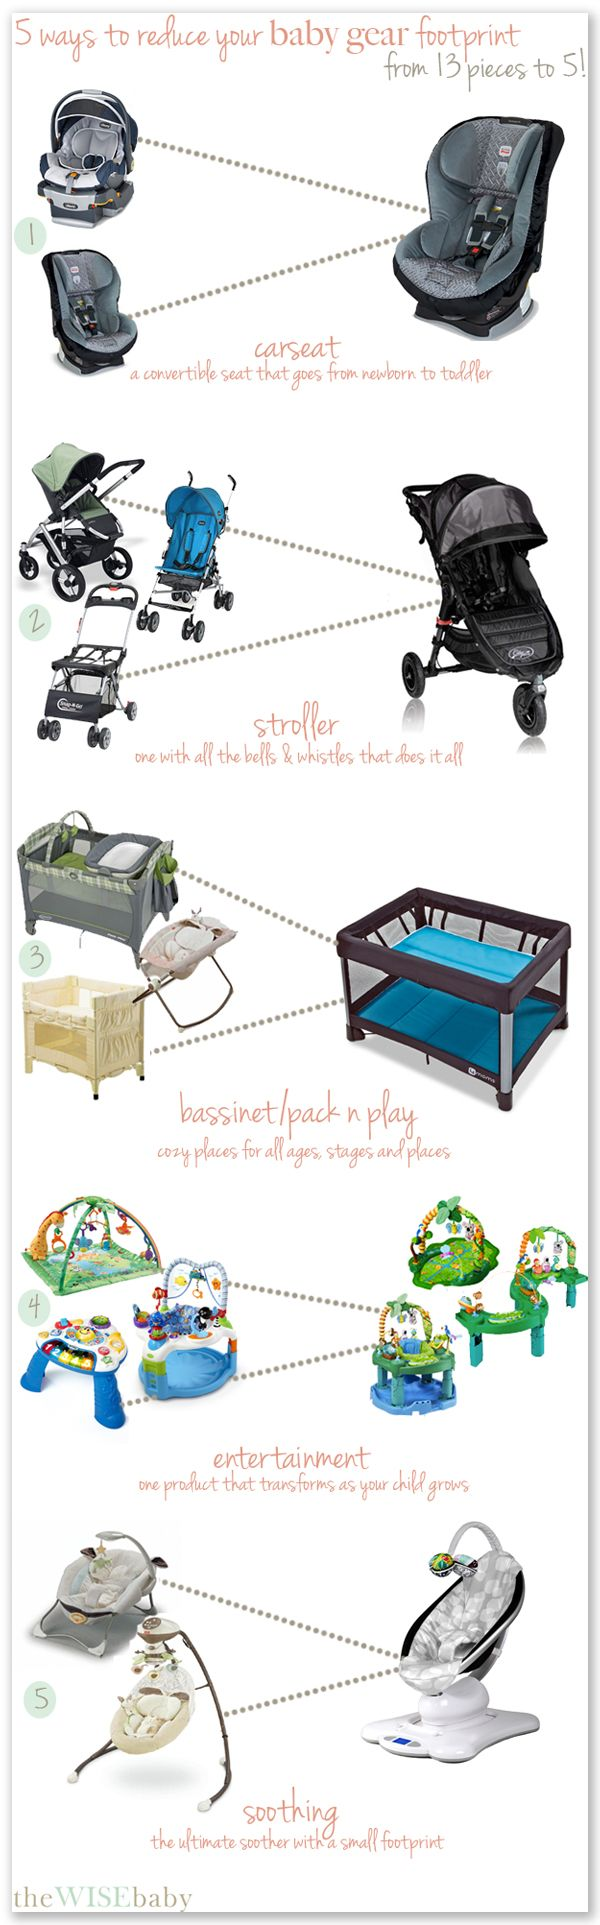 one of our favorites posts to date - ways to have LESS baby gear!....wish I would have seen this before I had my kids!! but not having any more well I say that now but Jody keeps begging for another one RIGHT NOW! lol